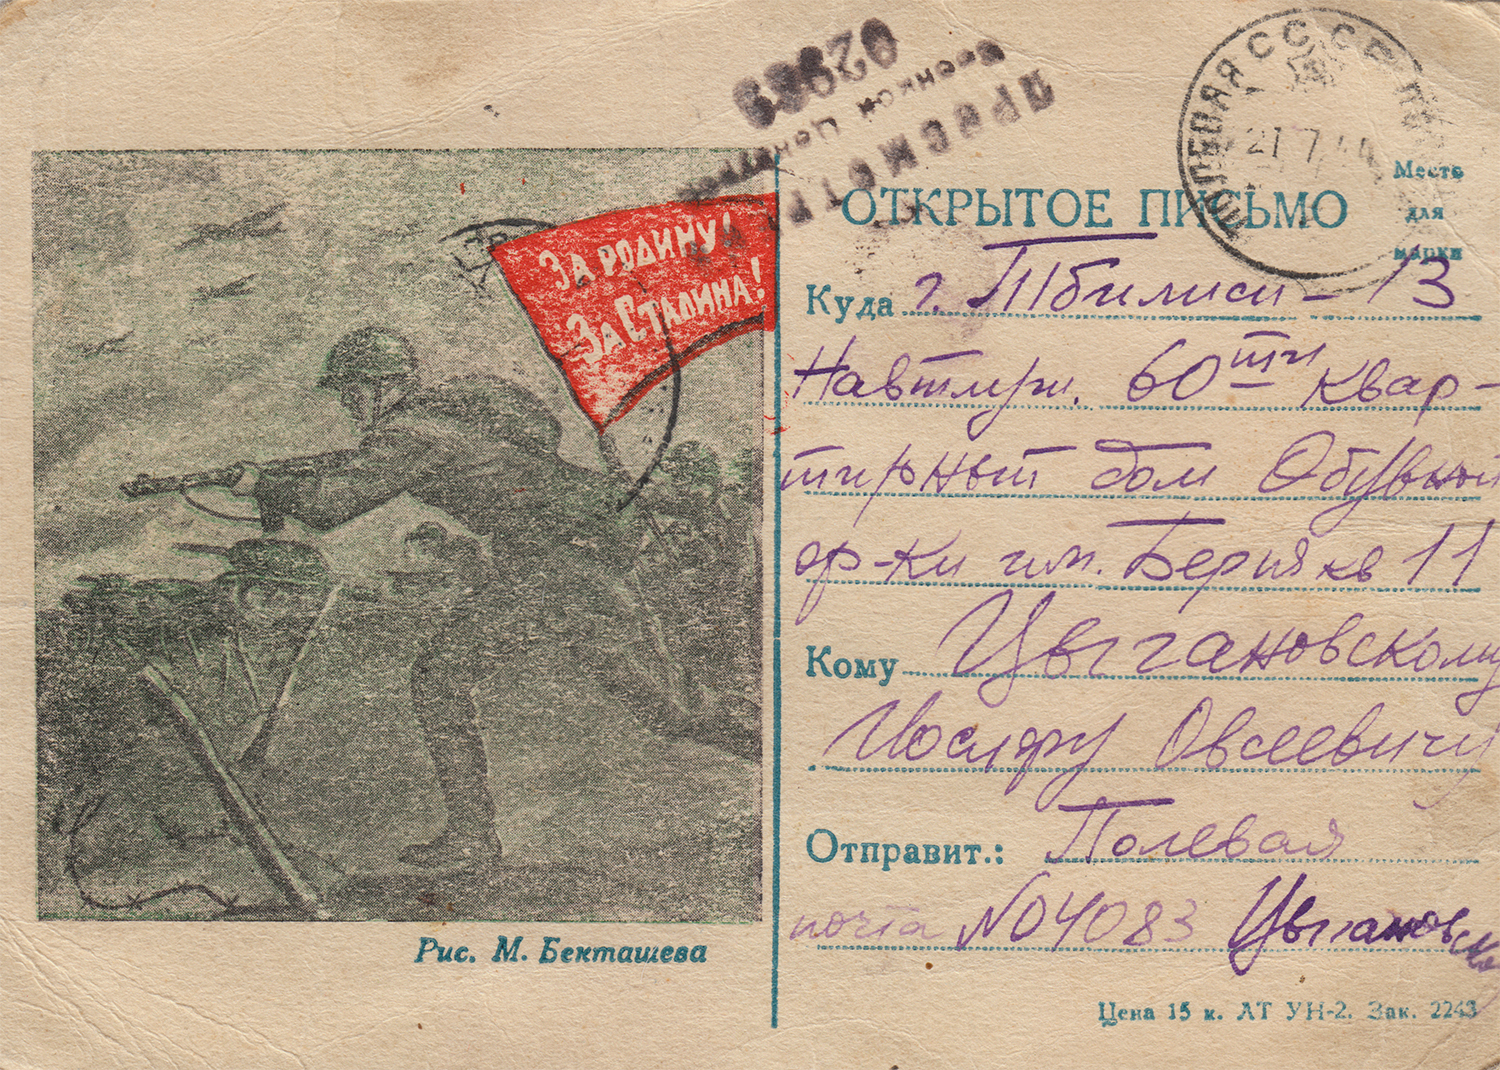 """Postcard Yona sent from the front to his parents, who were living in Tbilisi during the war. Illustration artist: M. Bektacheva. Illustration caption: """"For the Motherland! For Stalin!"""" Yona writes he is deeply concerned because he had not received mail from his family and promises he is doing all he can to defeat the enemy. Postcard message dated April 18, 1944."""